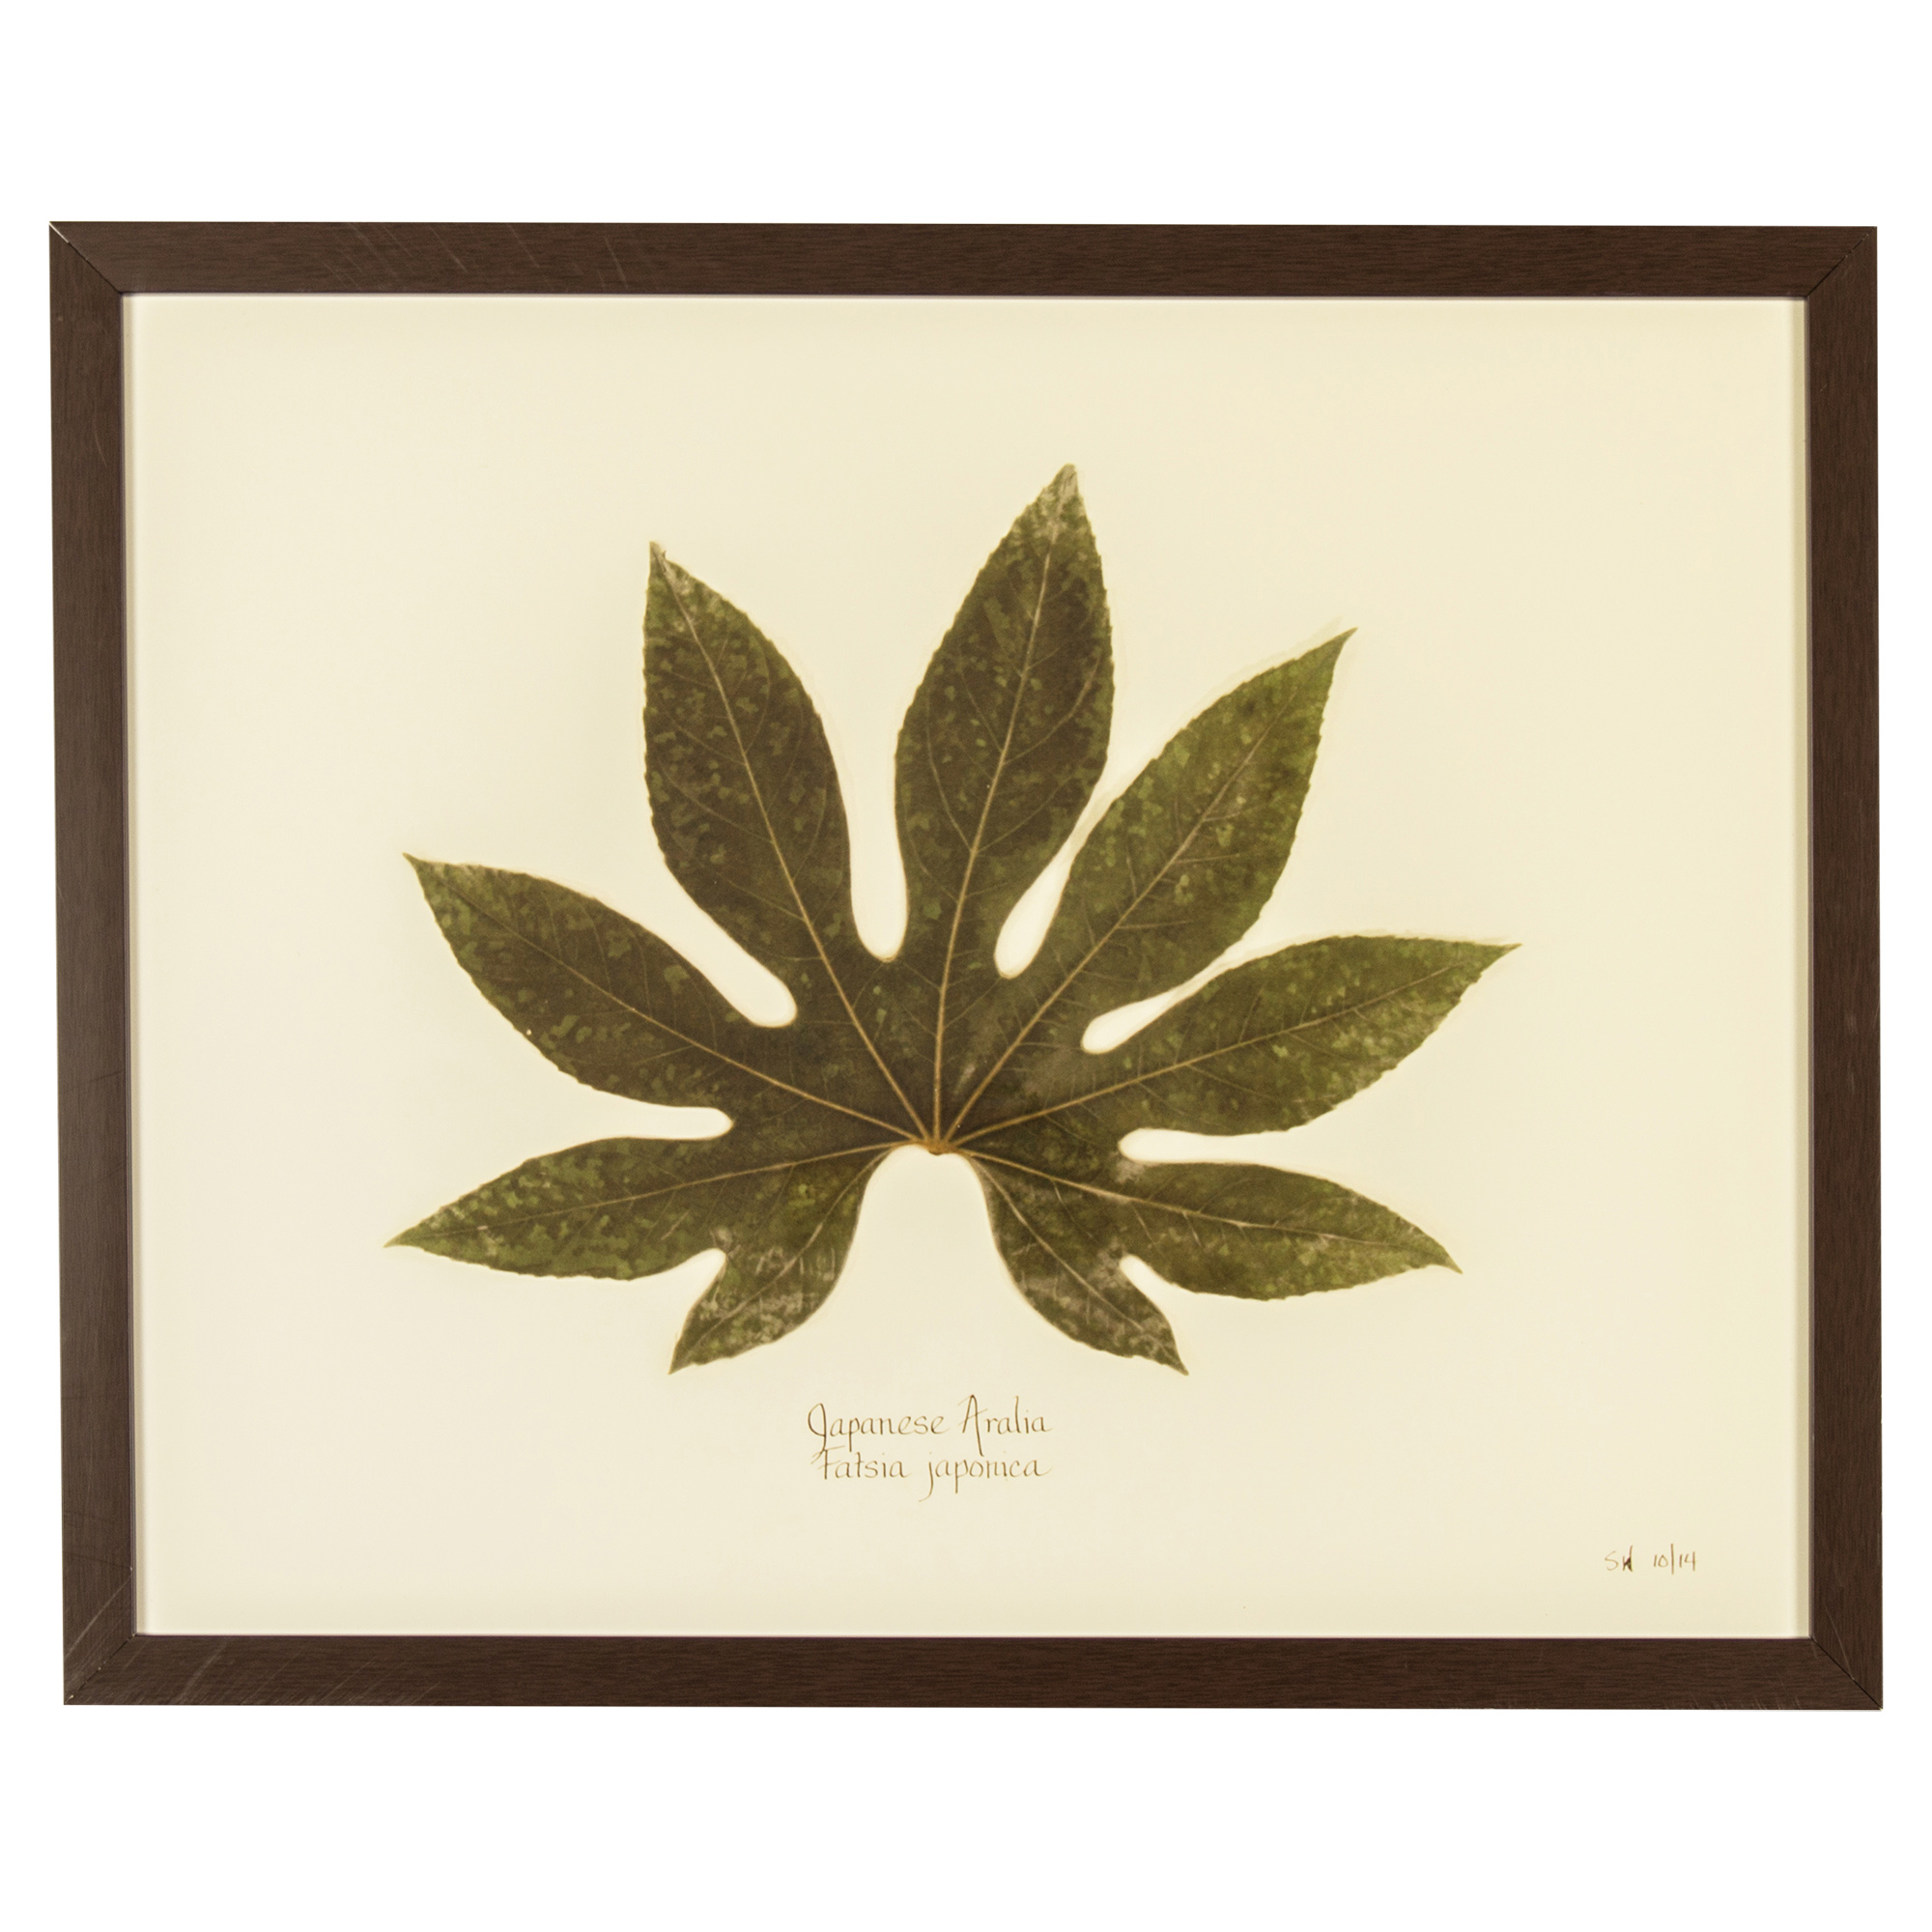 Industrial Japanese Aralia Print Botanical Framed Wall Art